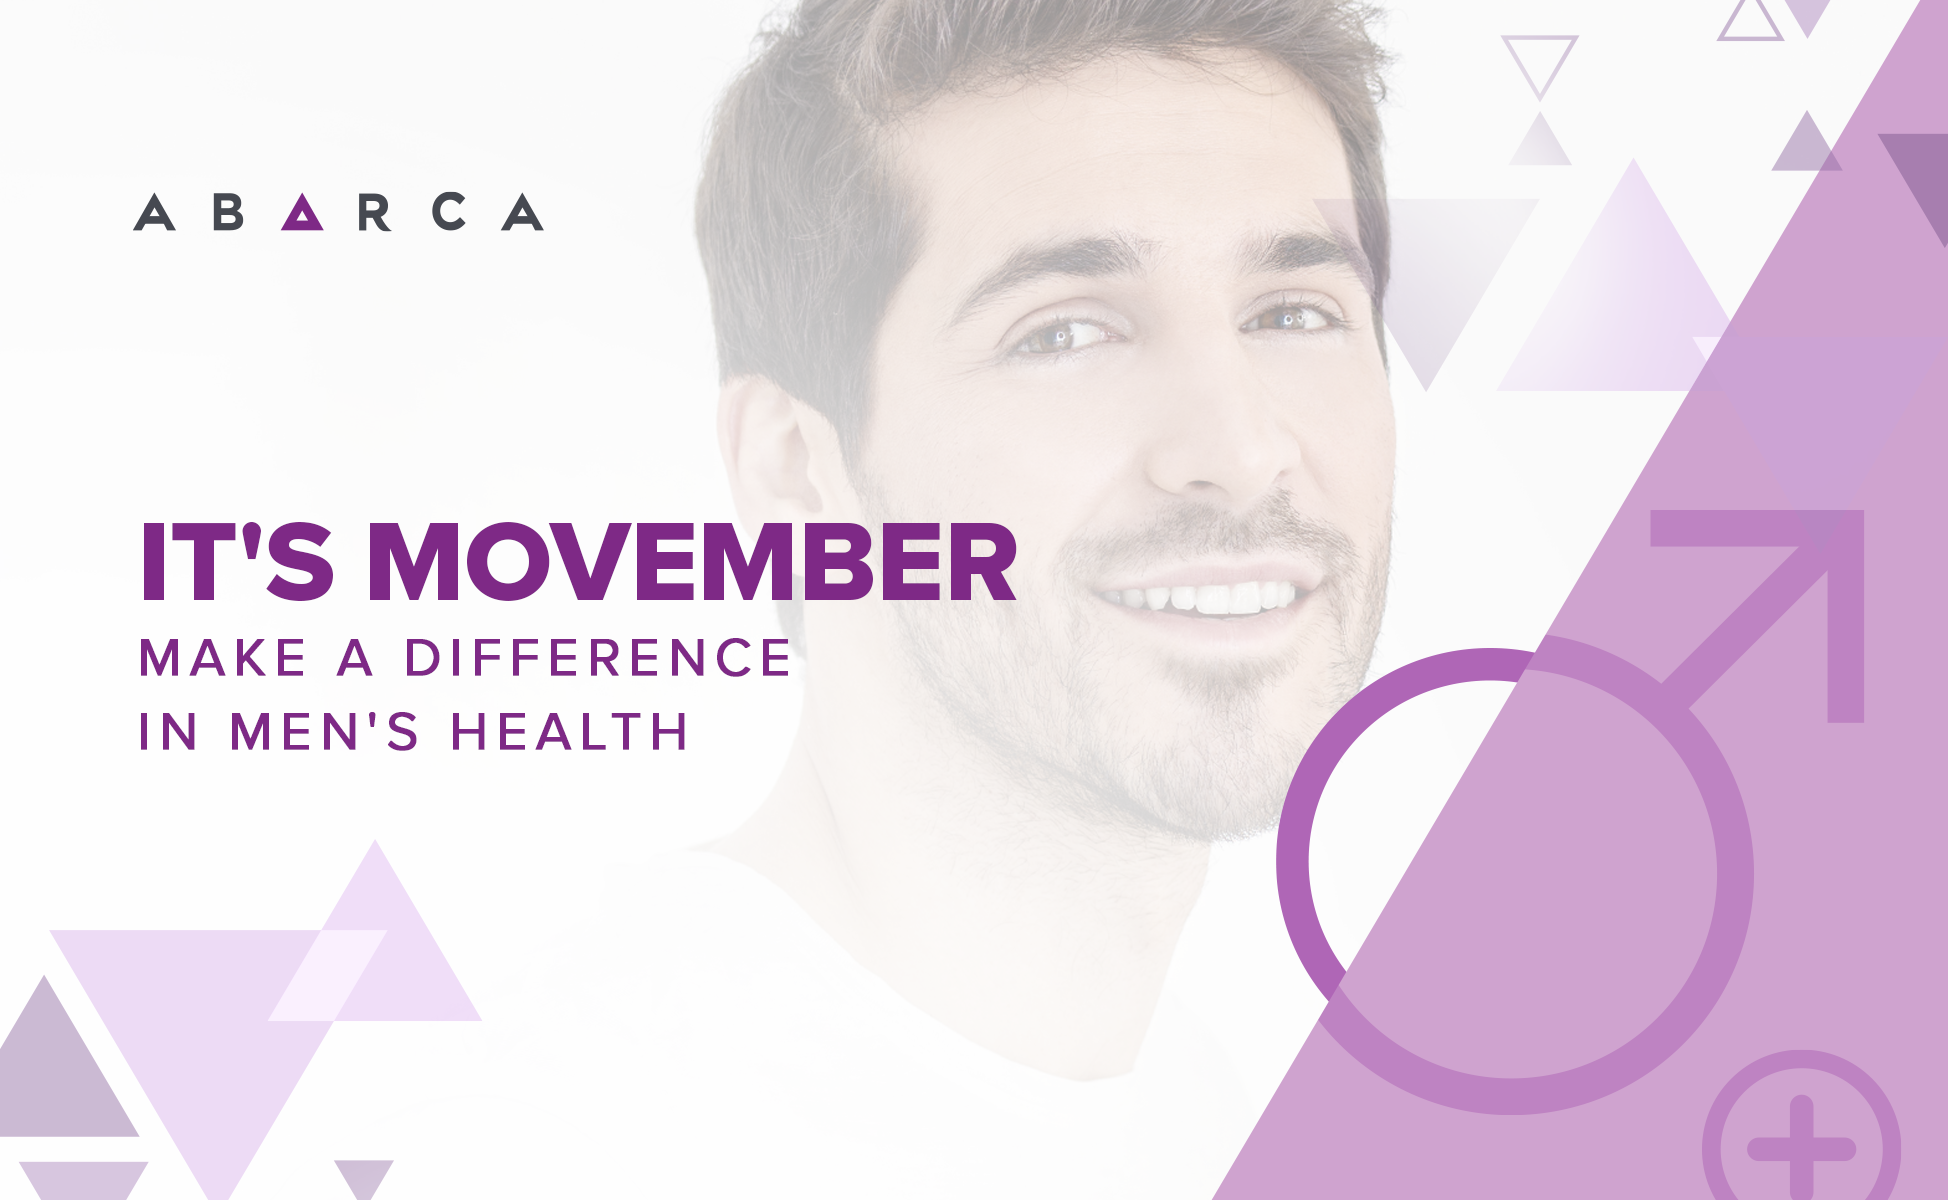 Abarca Health goes all in for Movember and Men's Health